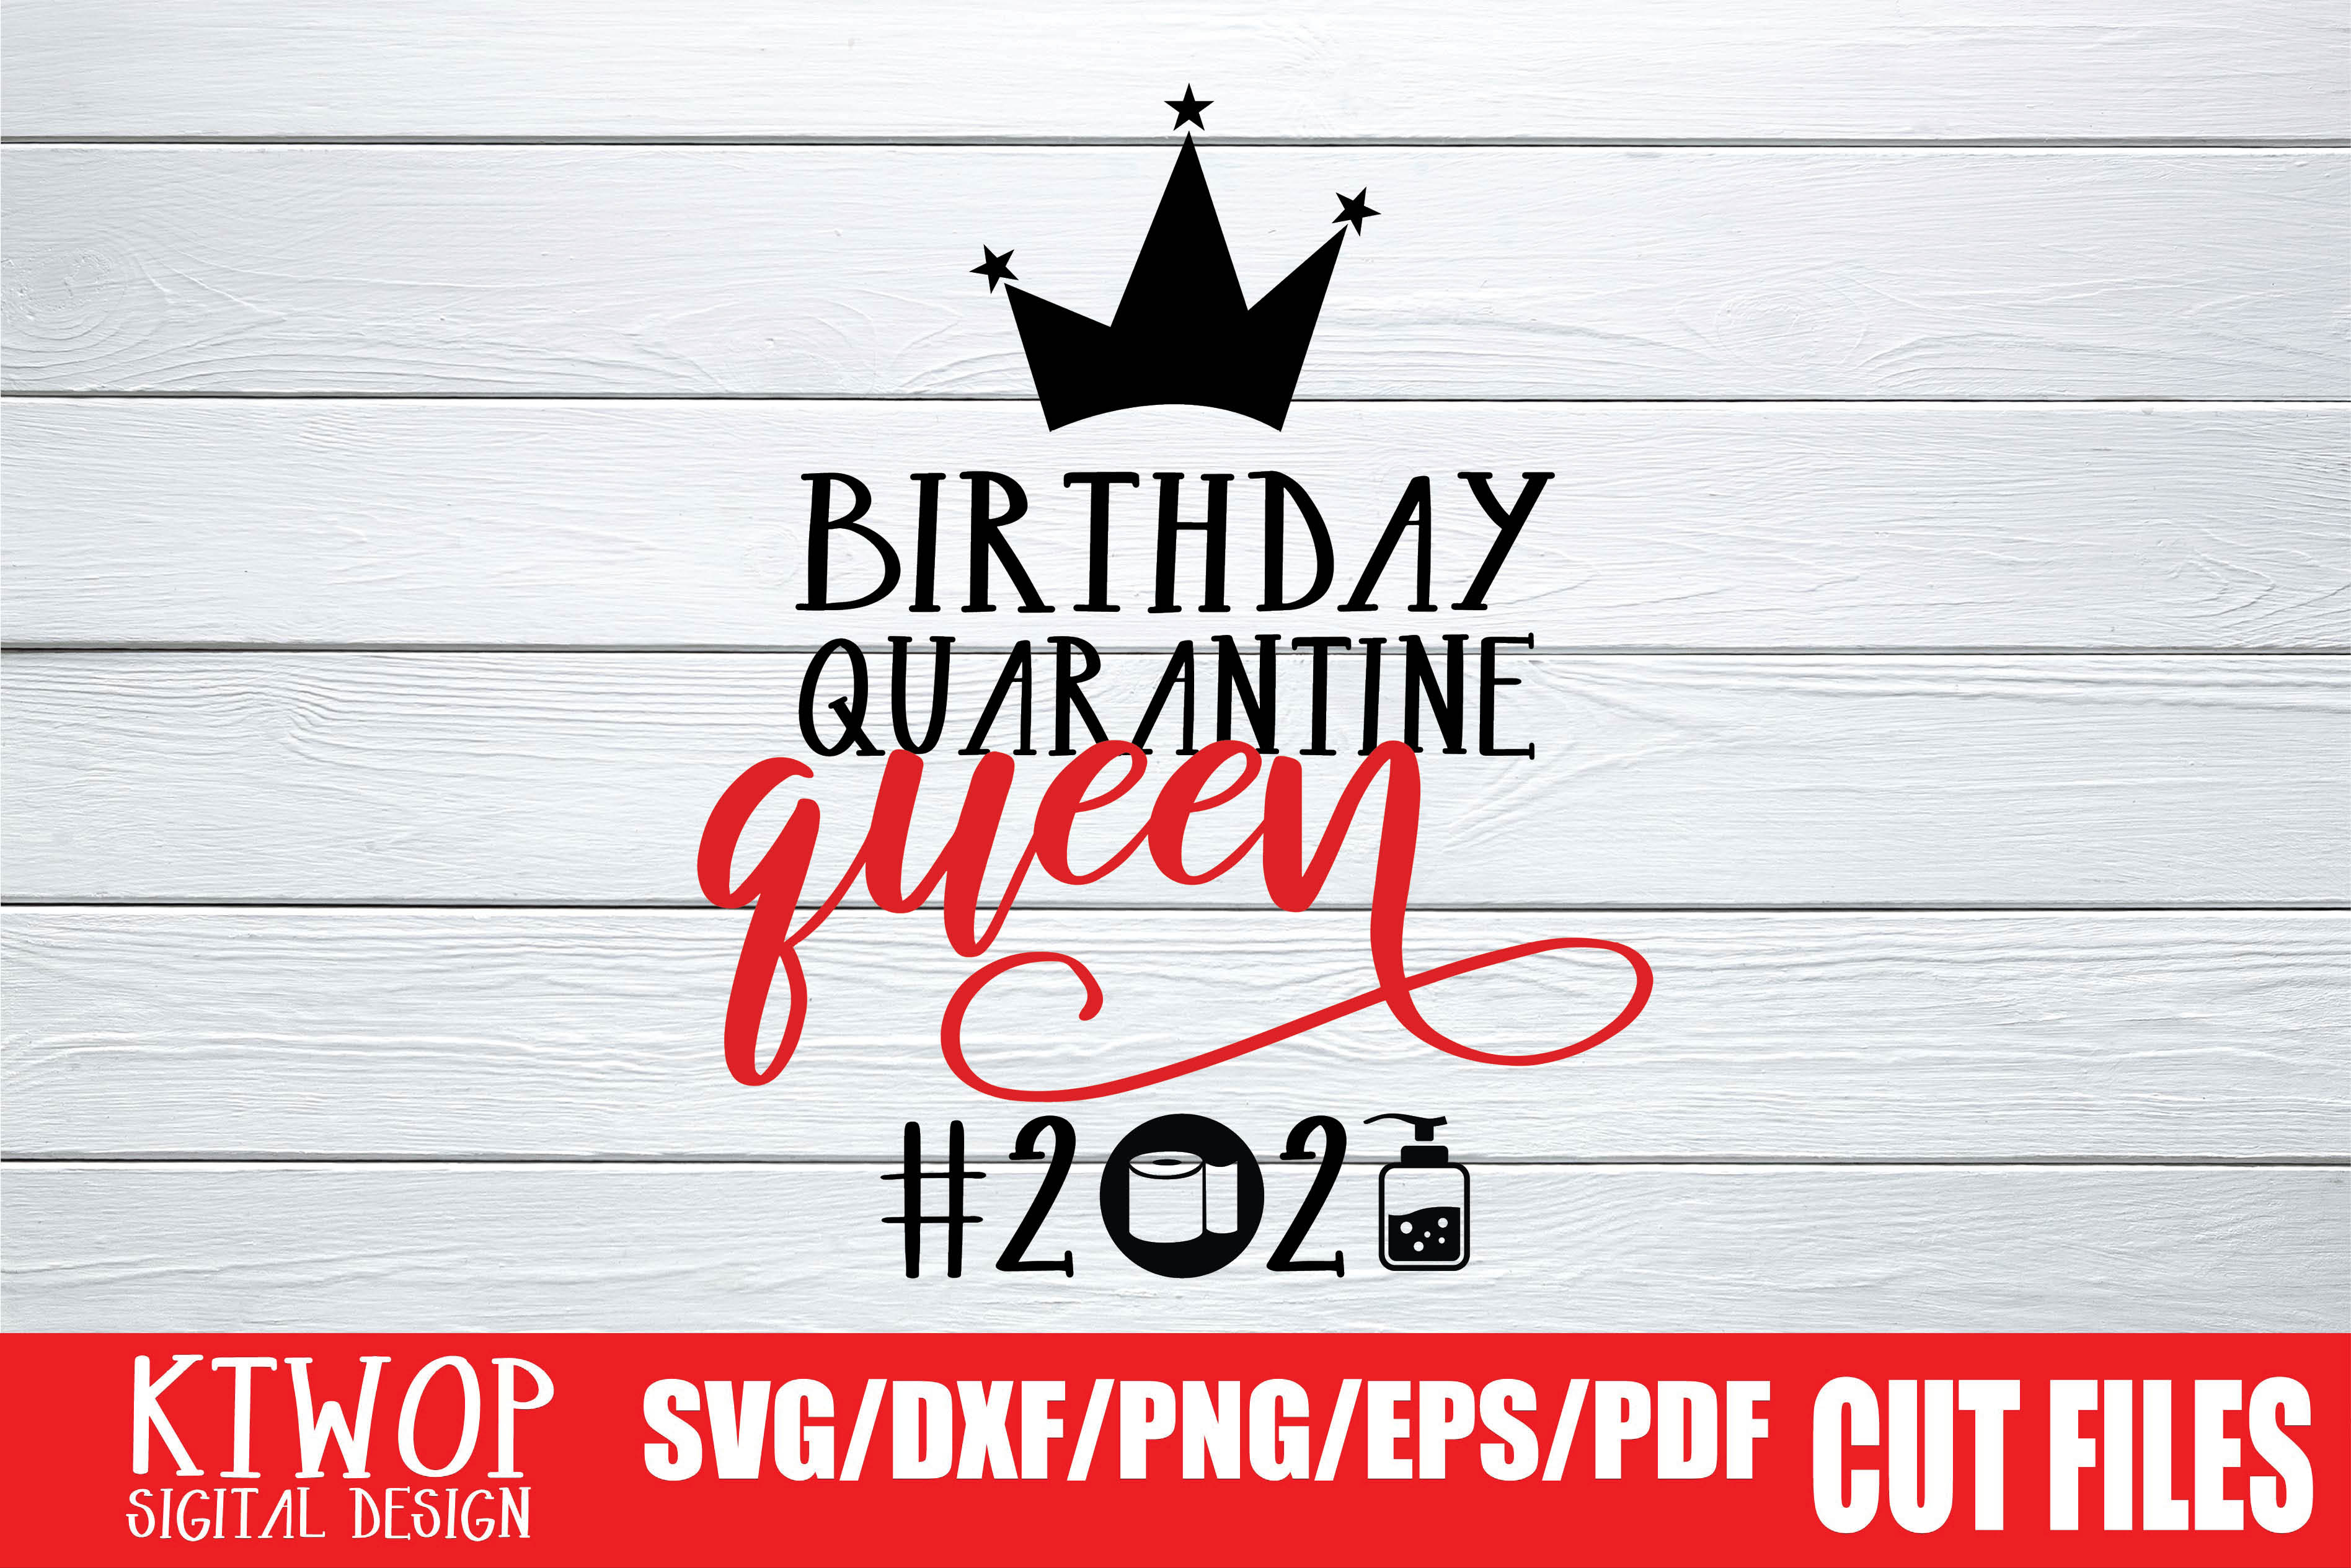 Download Free Birthday Quarantine Queen 2020 Graphic By Ktwop Creative Fabrica for Cricut Explore, Silhouette and other cutting machines.